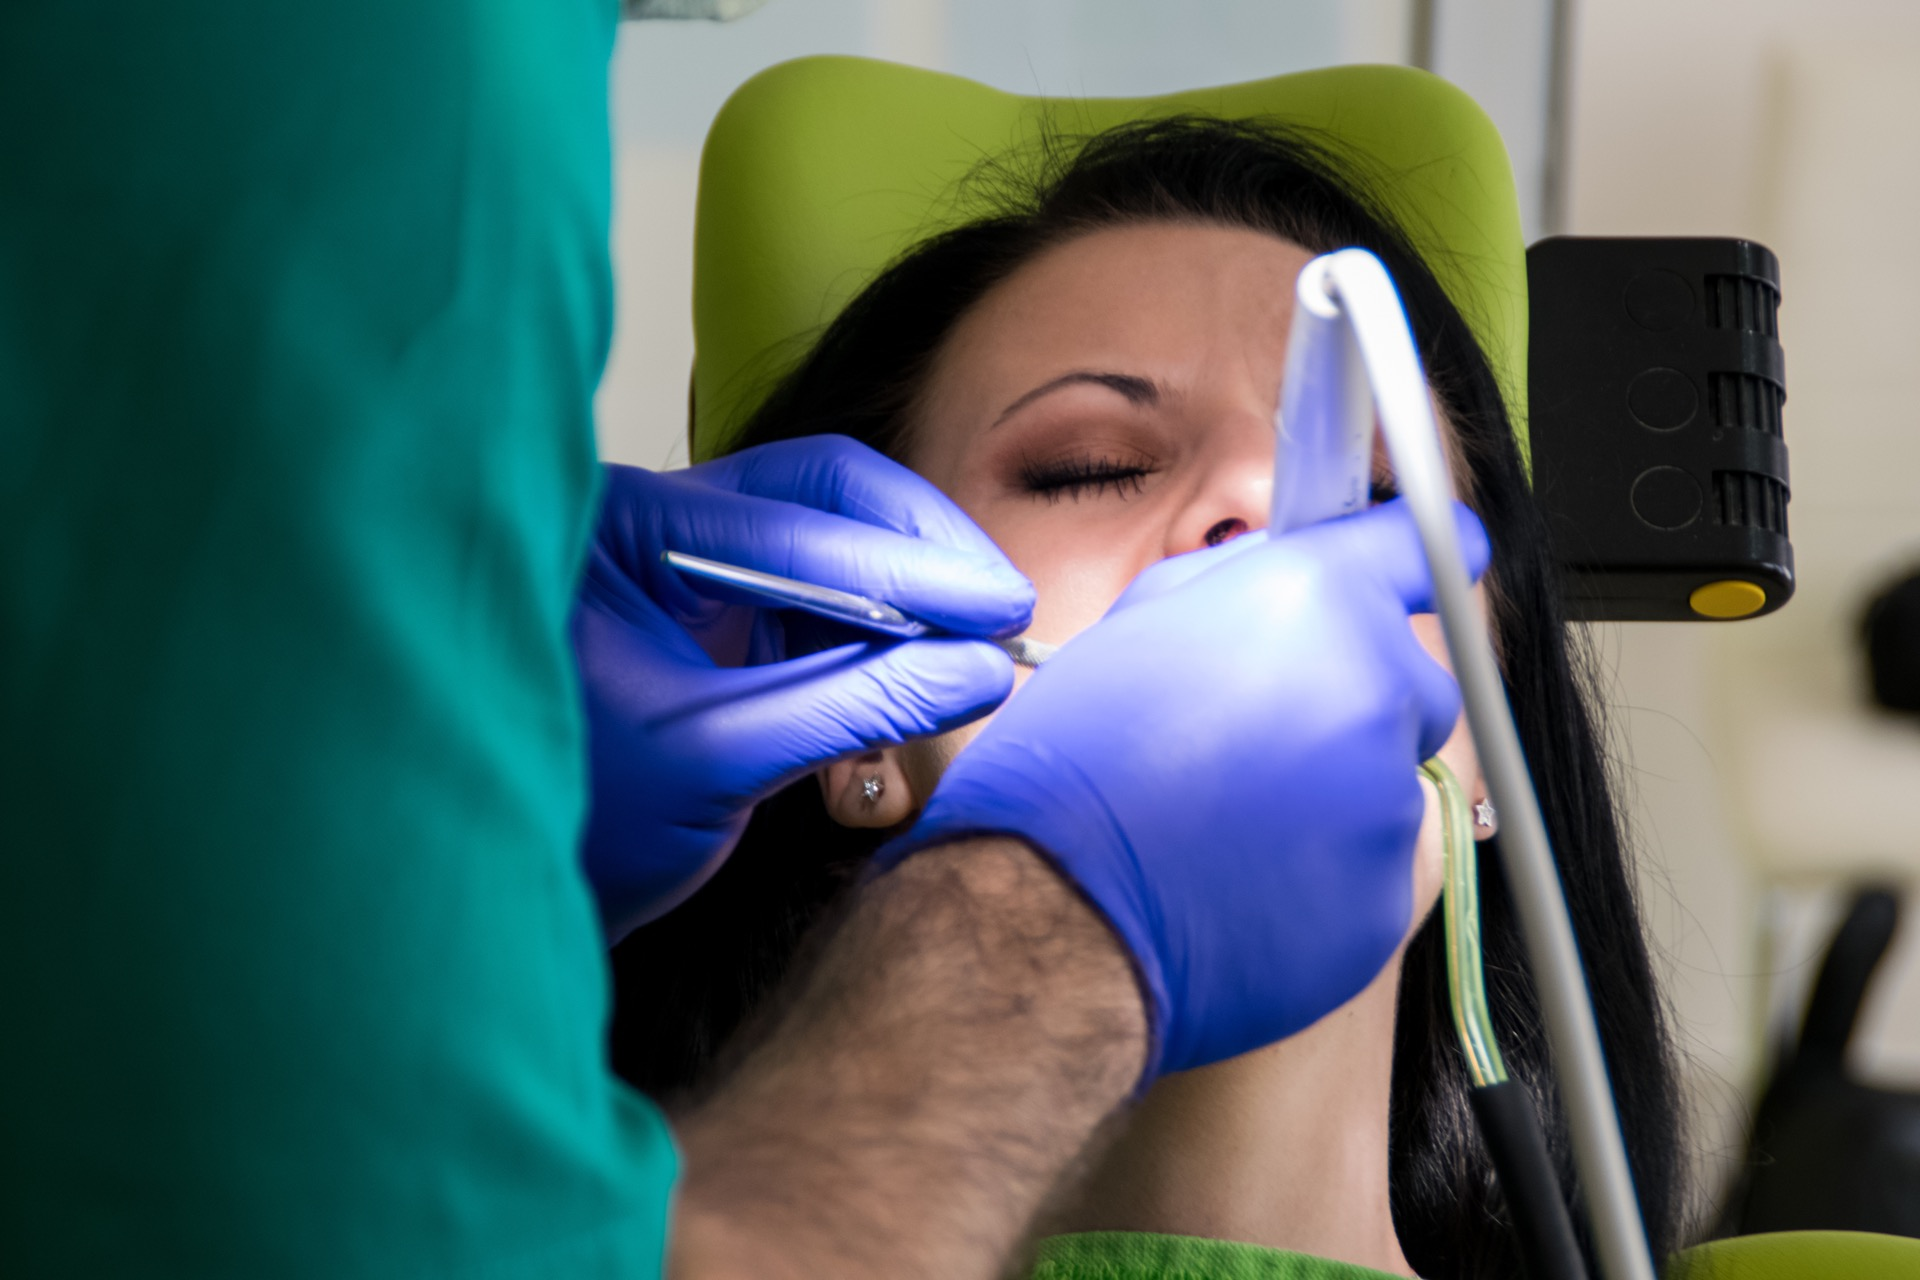 Young woman getting sleep dentistry